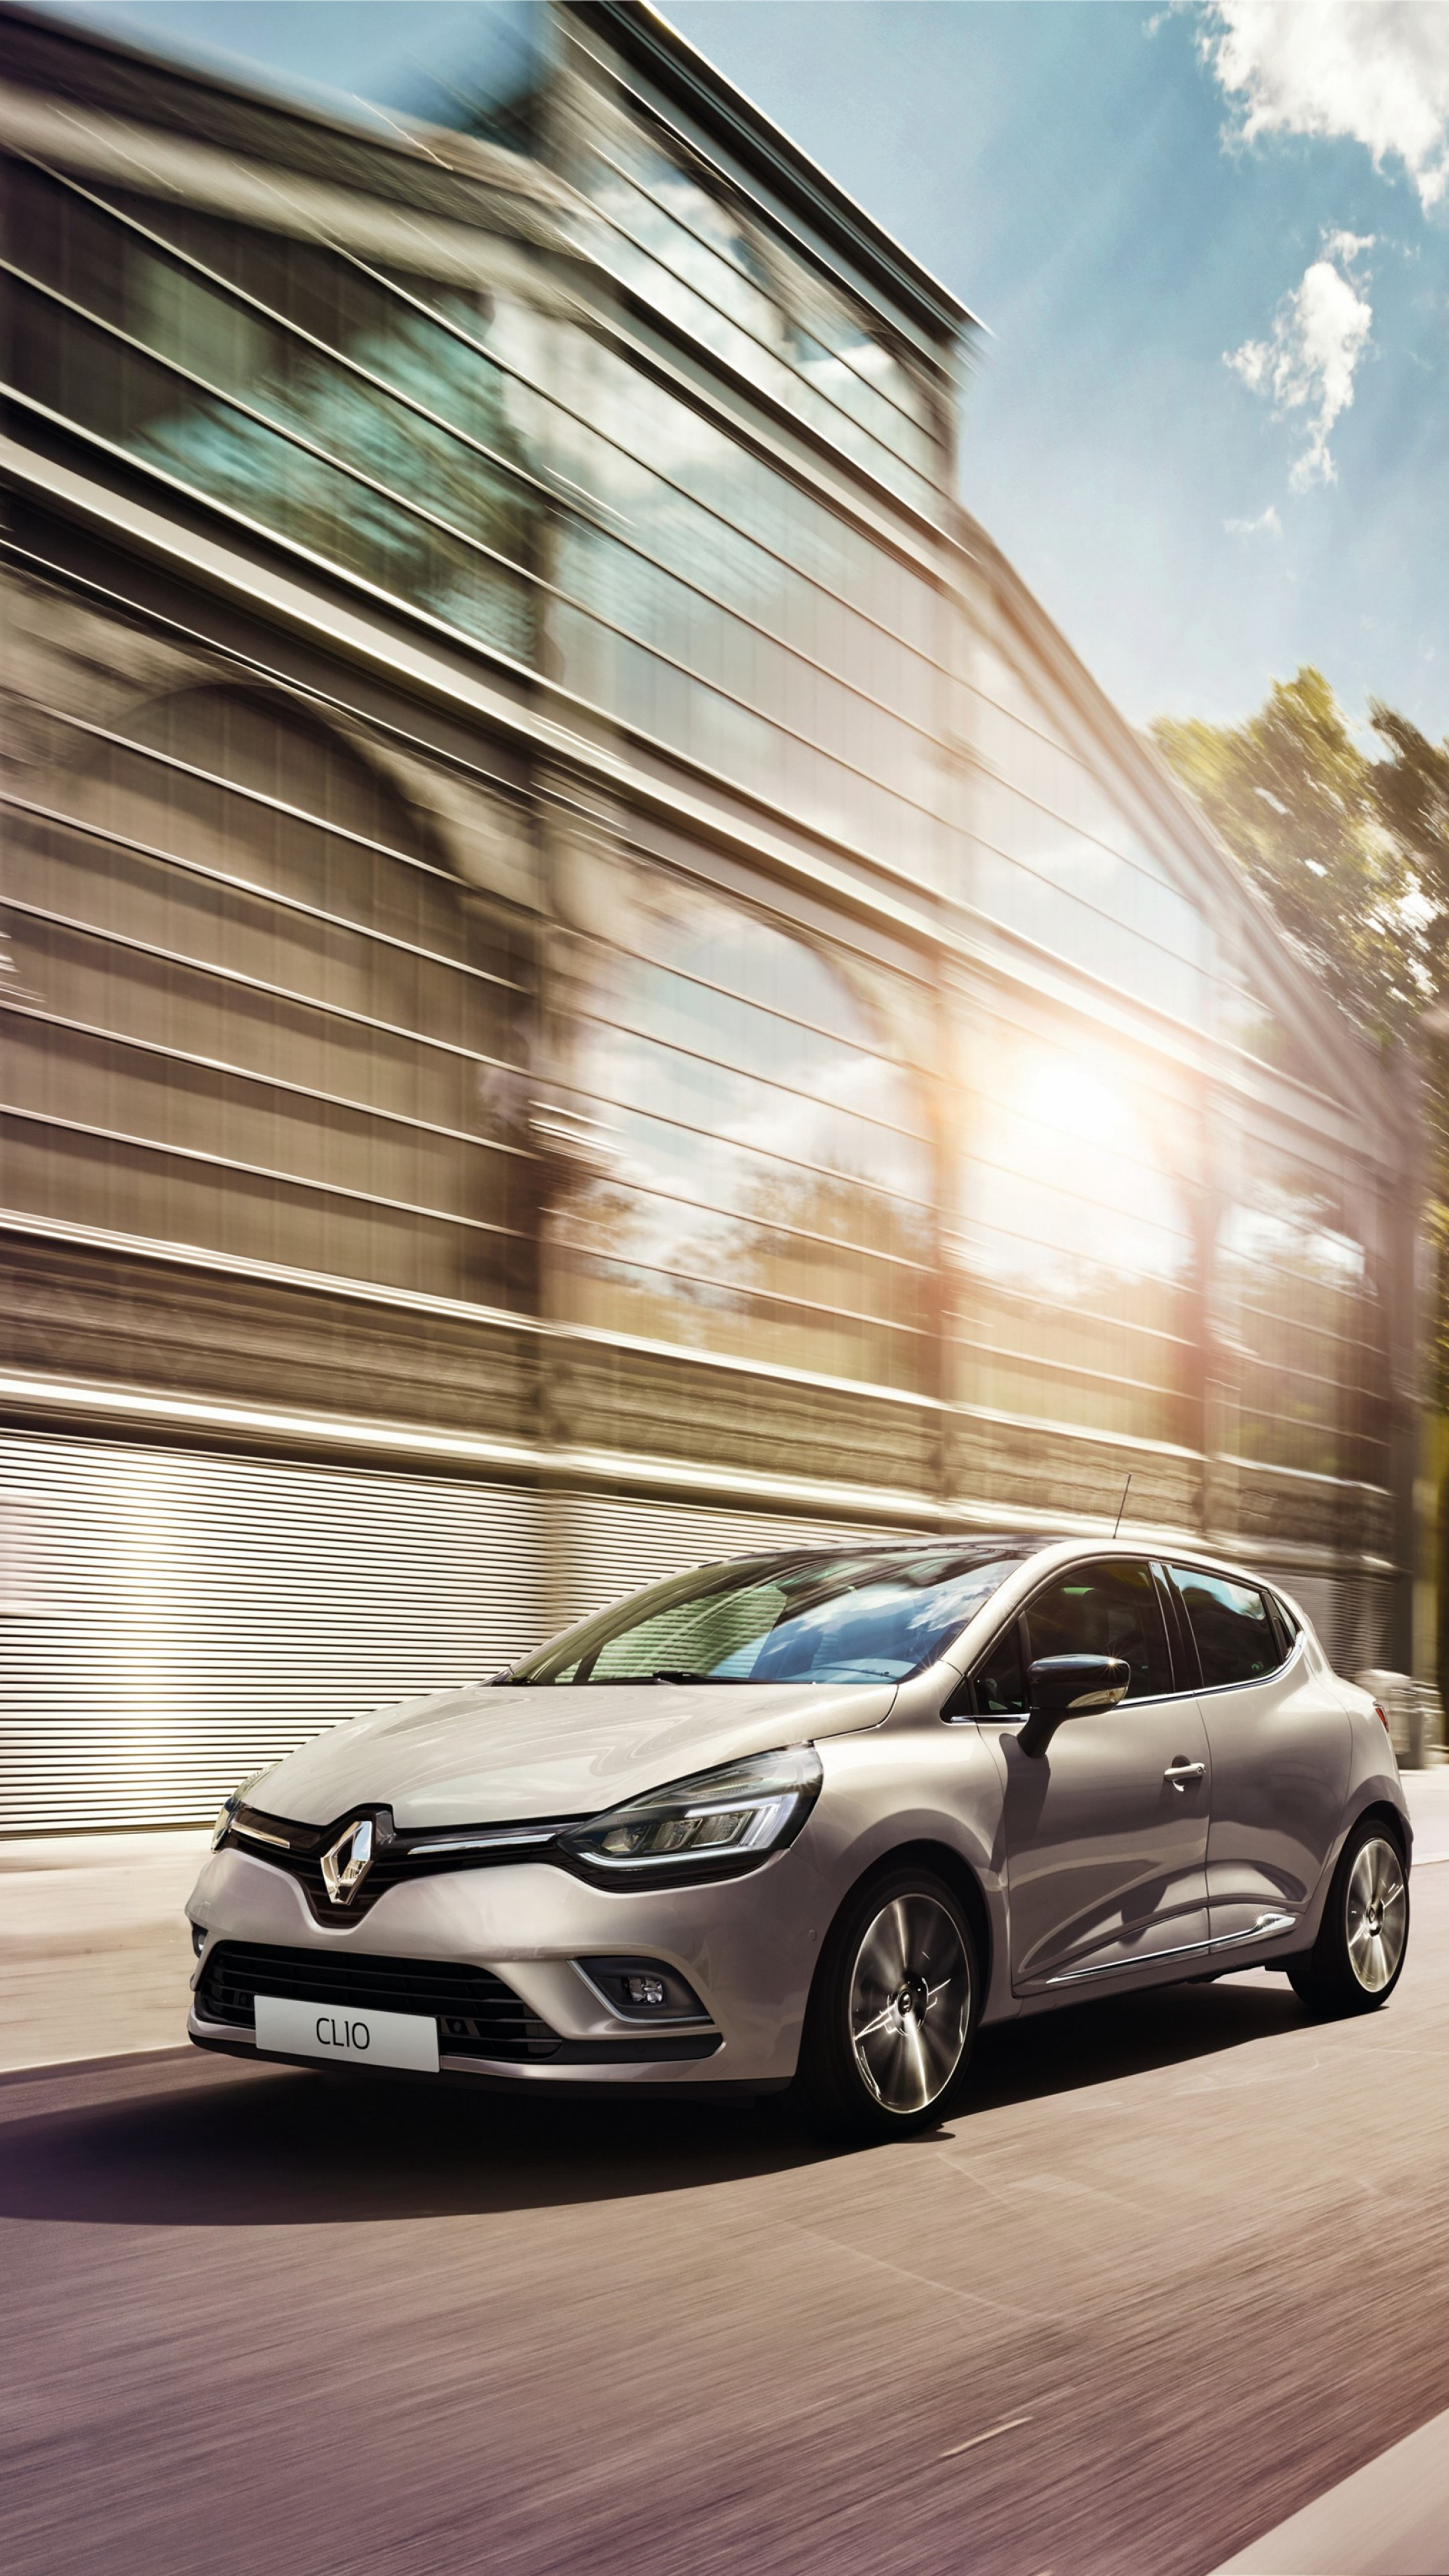 Wallpaper Renault Clio Hatchback Silver Cars Bikes 11262 Page 2